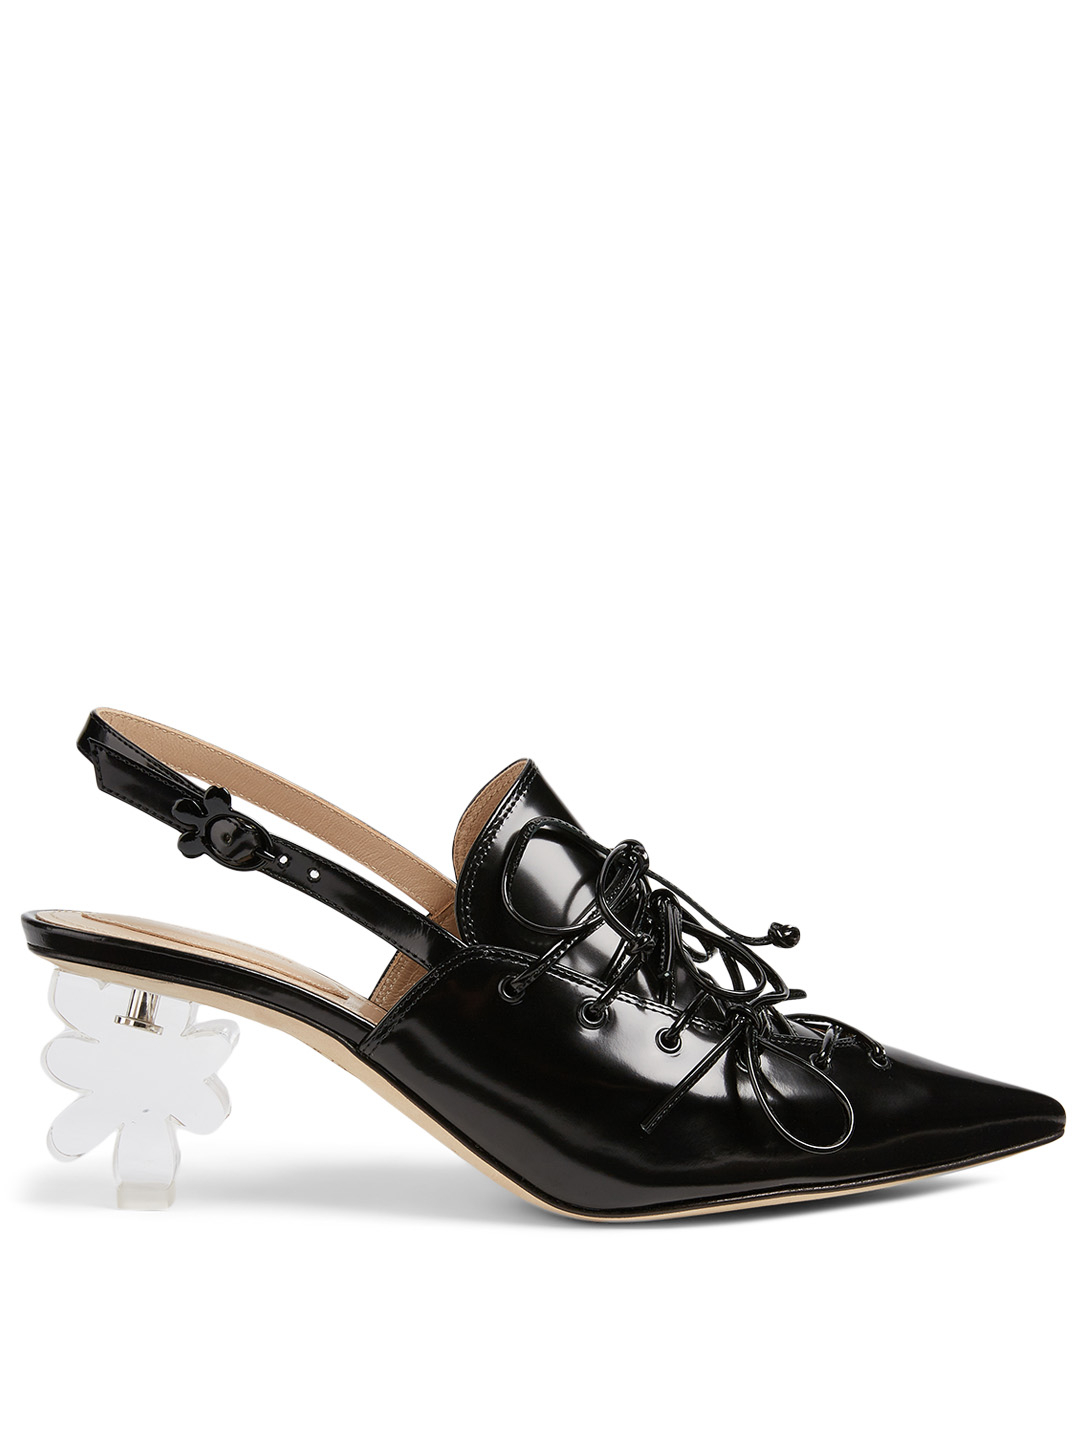 Flower Heel Leather Slingback Pumps by Holt Renfrew